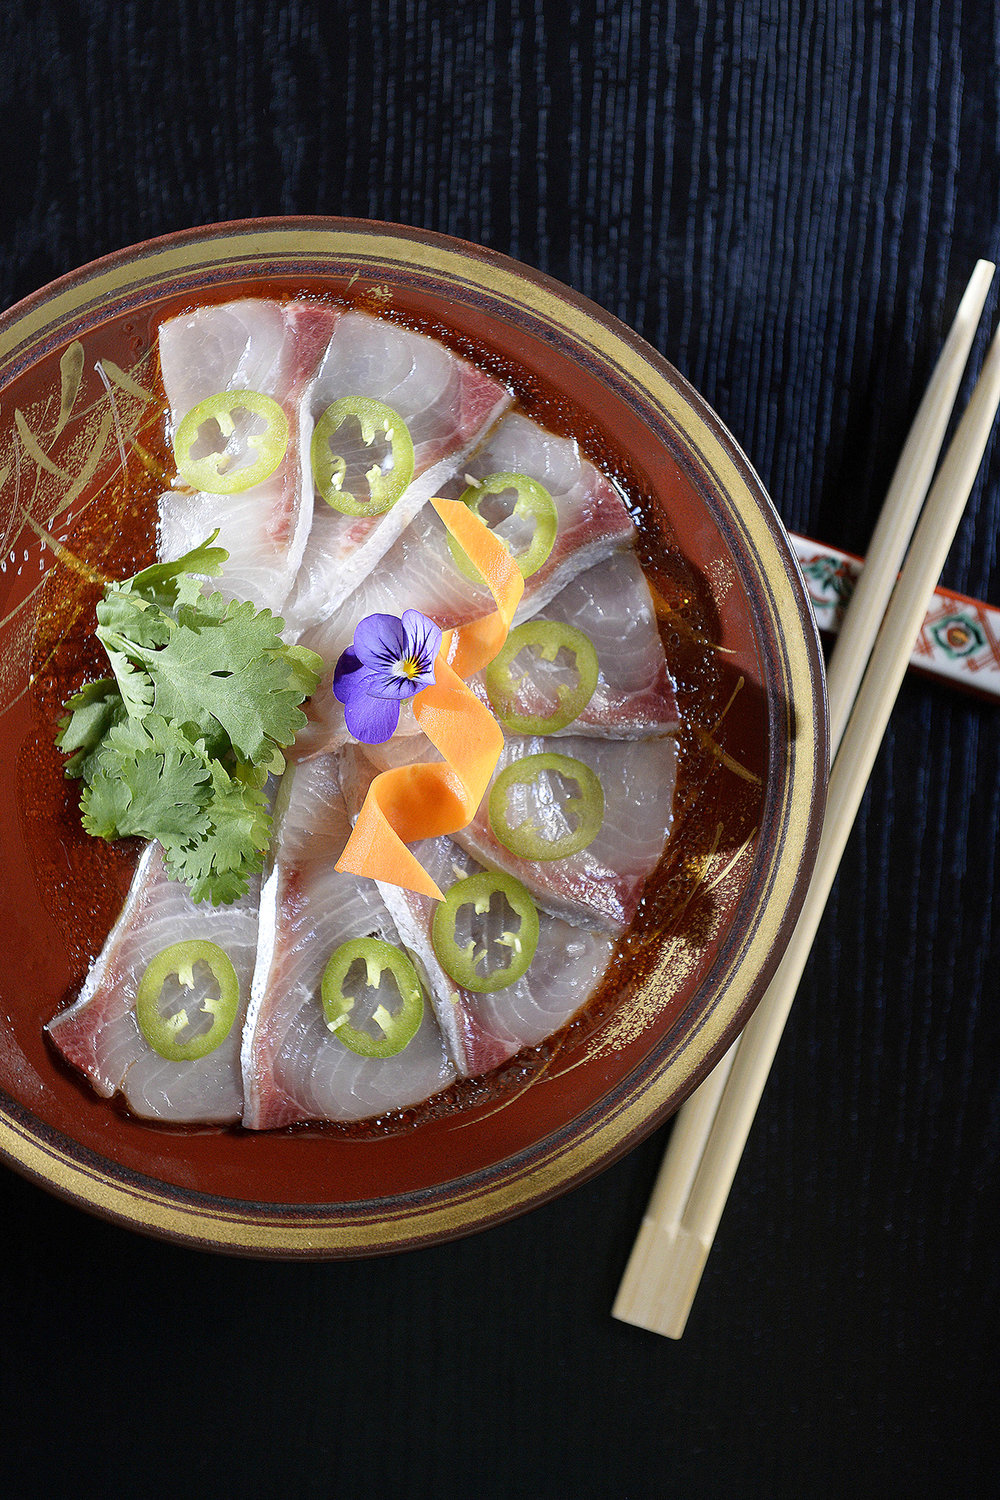 CHP_Export_133275490_Kingfish sashimi with Jalapeno  at Himeji Japanese Grote St.  picture Bianca De.jpg